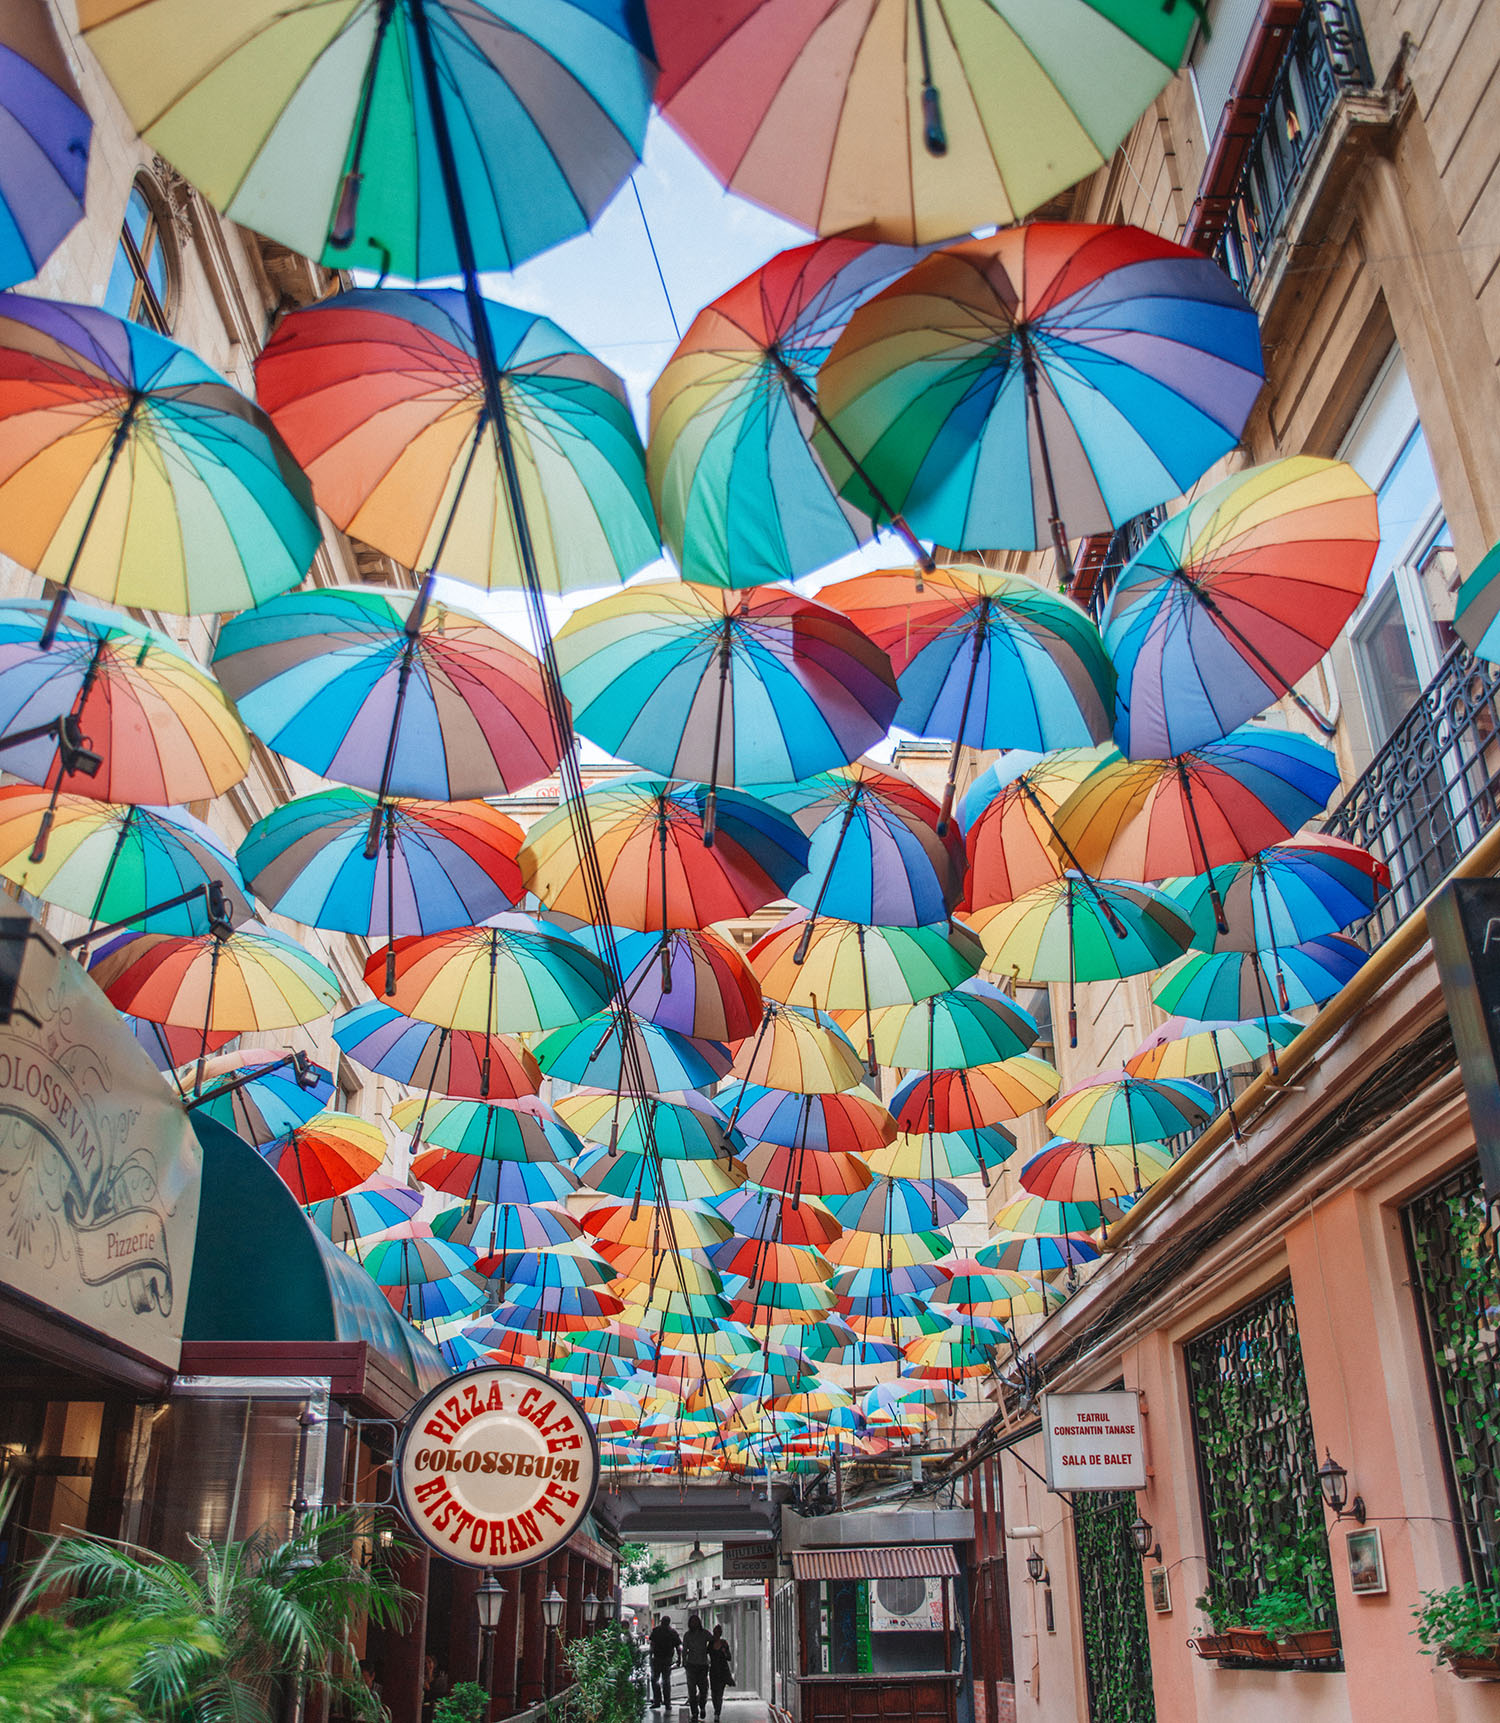 Pizza Colosseum - Coloful umbrellas in Bucharest